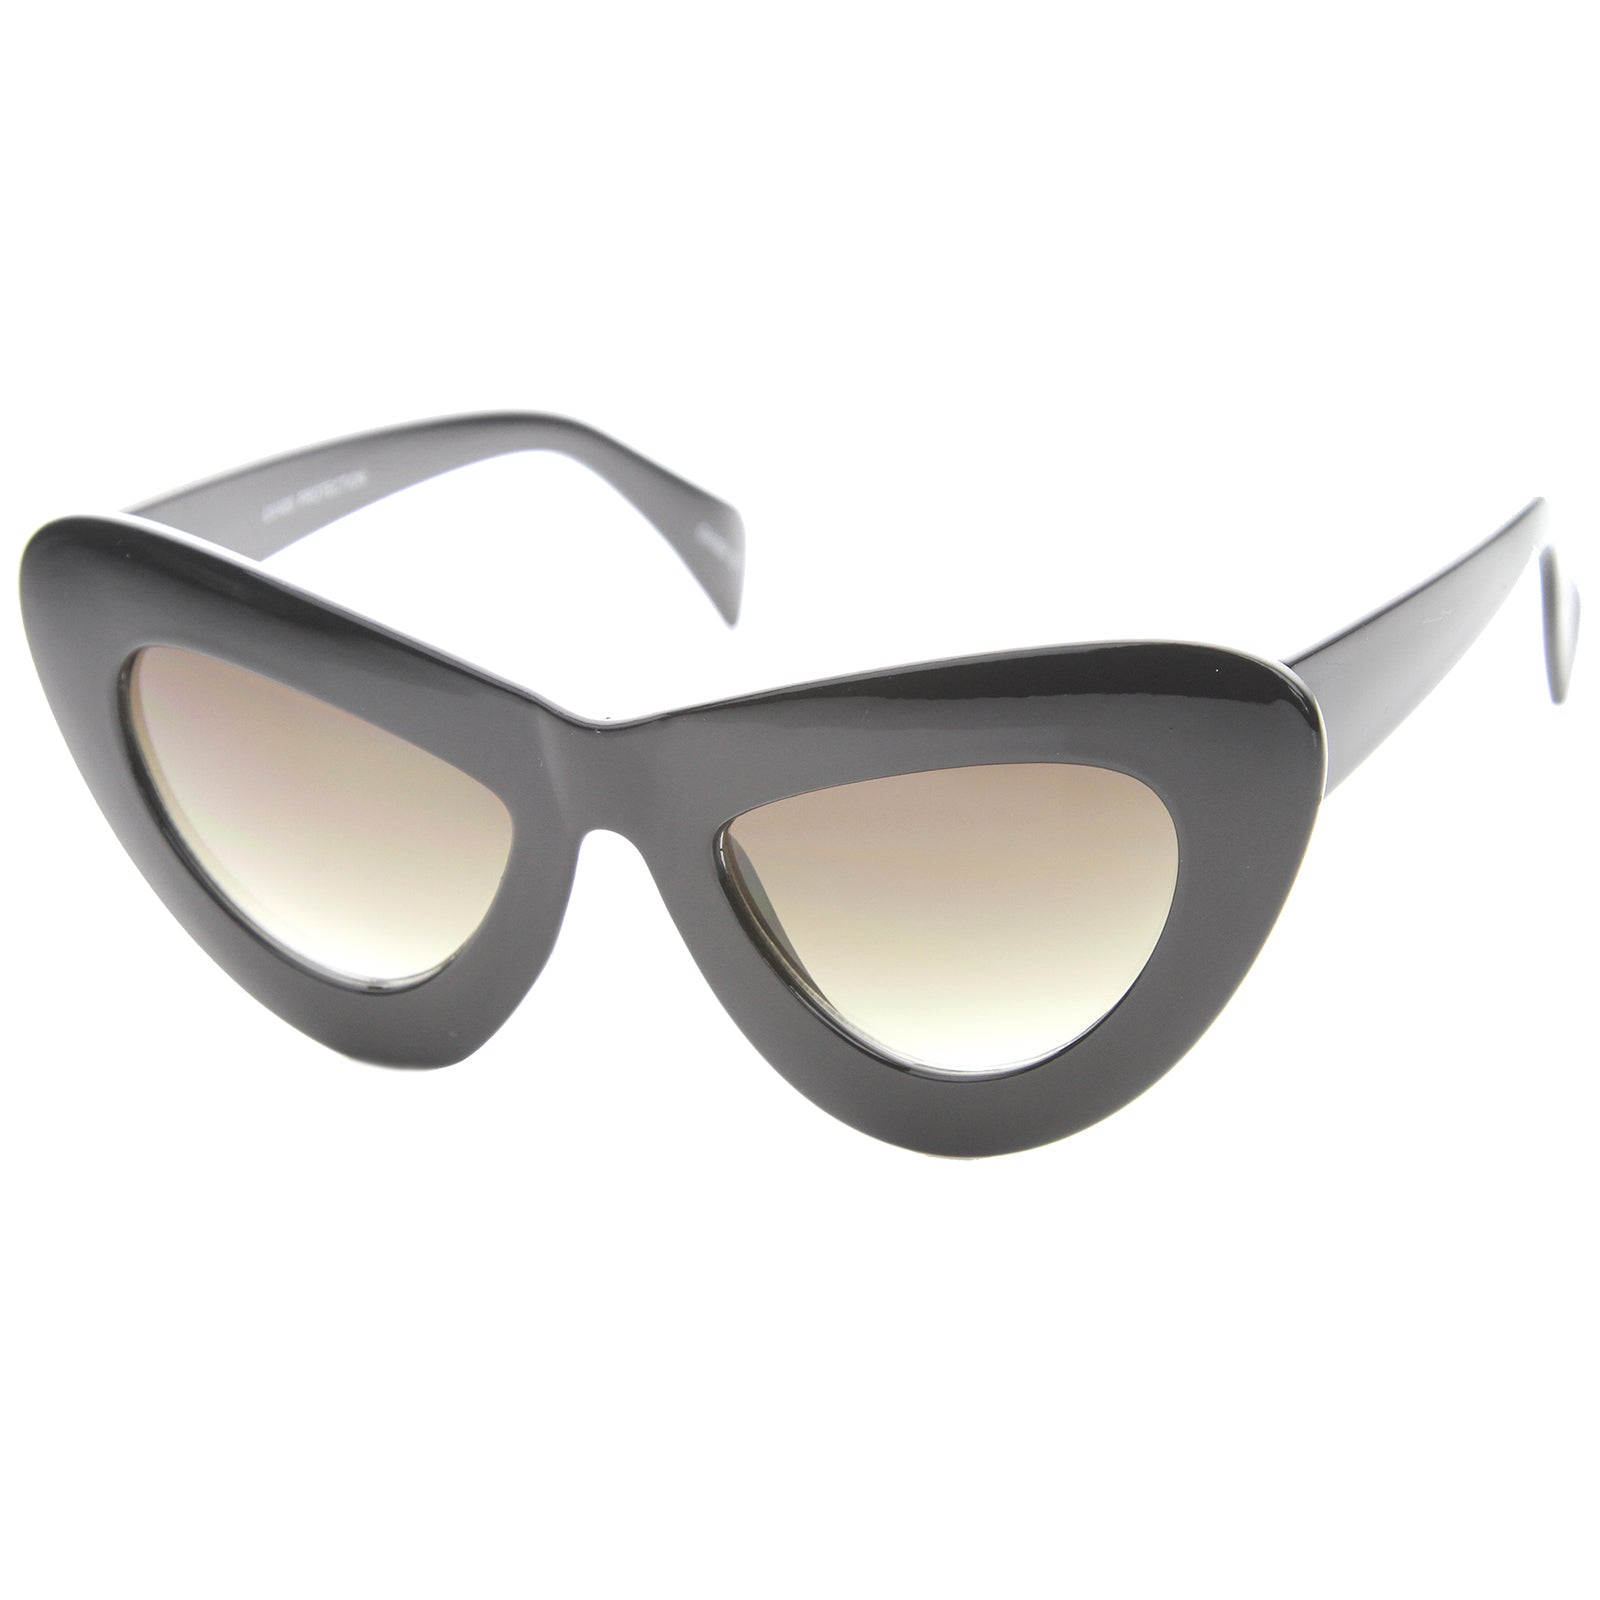 Womens Cat Eye Sunglasses With UV400 Protected Composite Lens - sunglass.la - 2